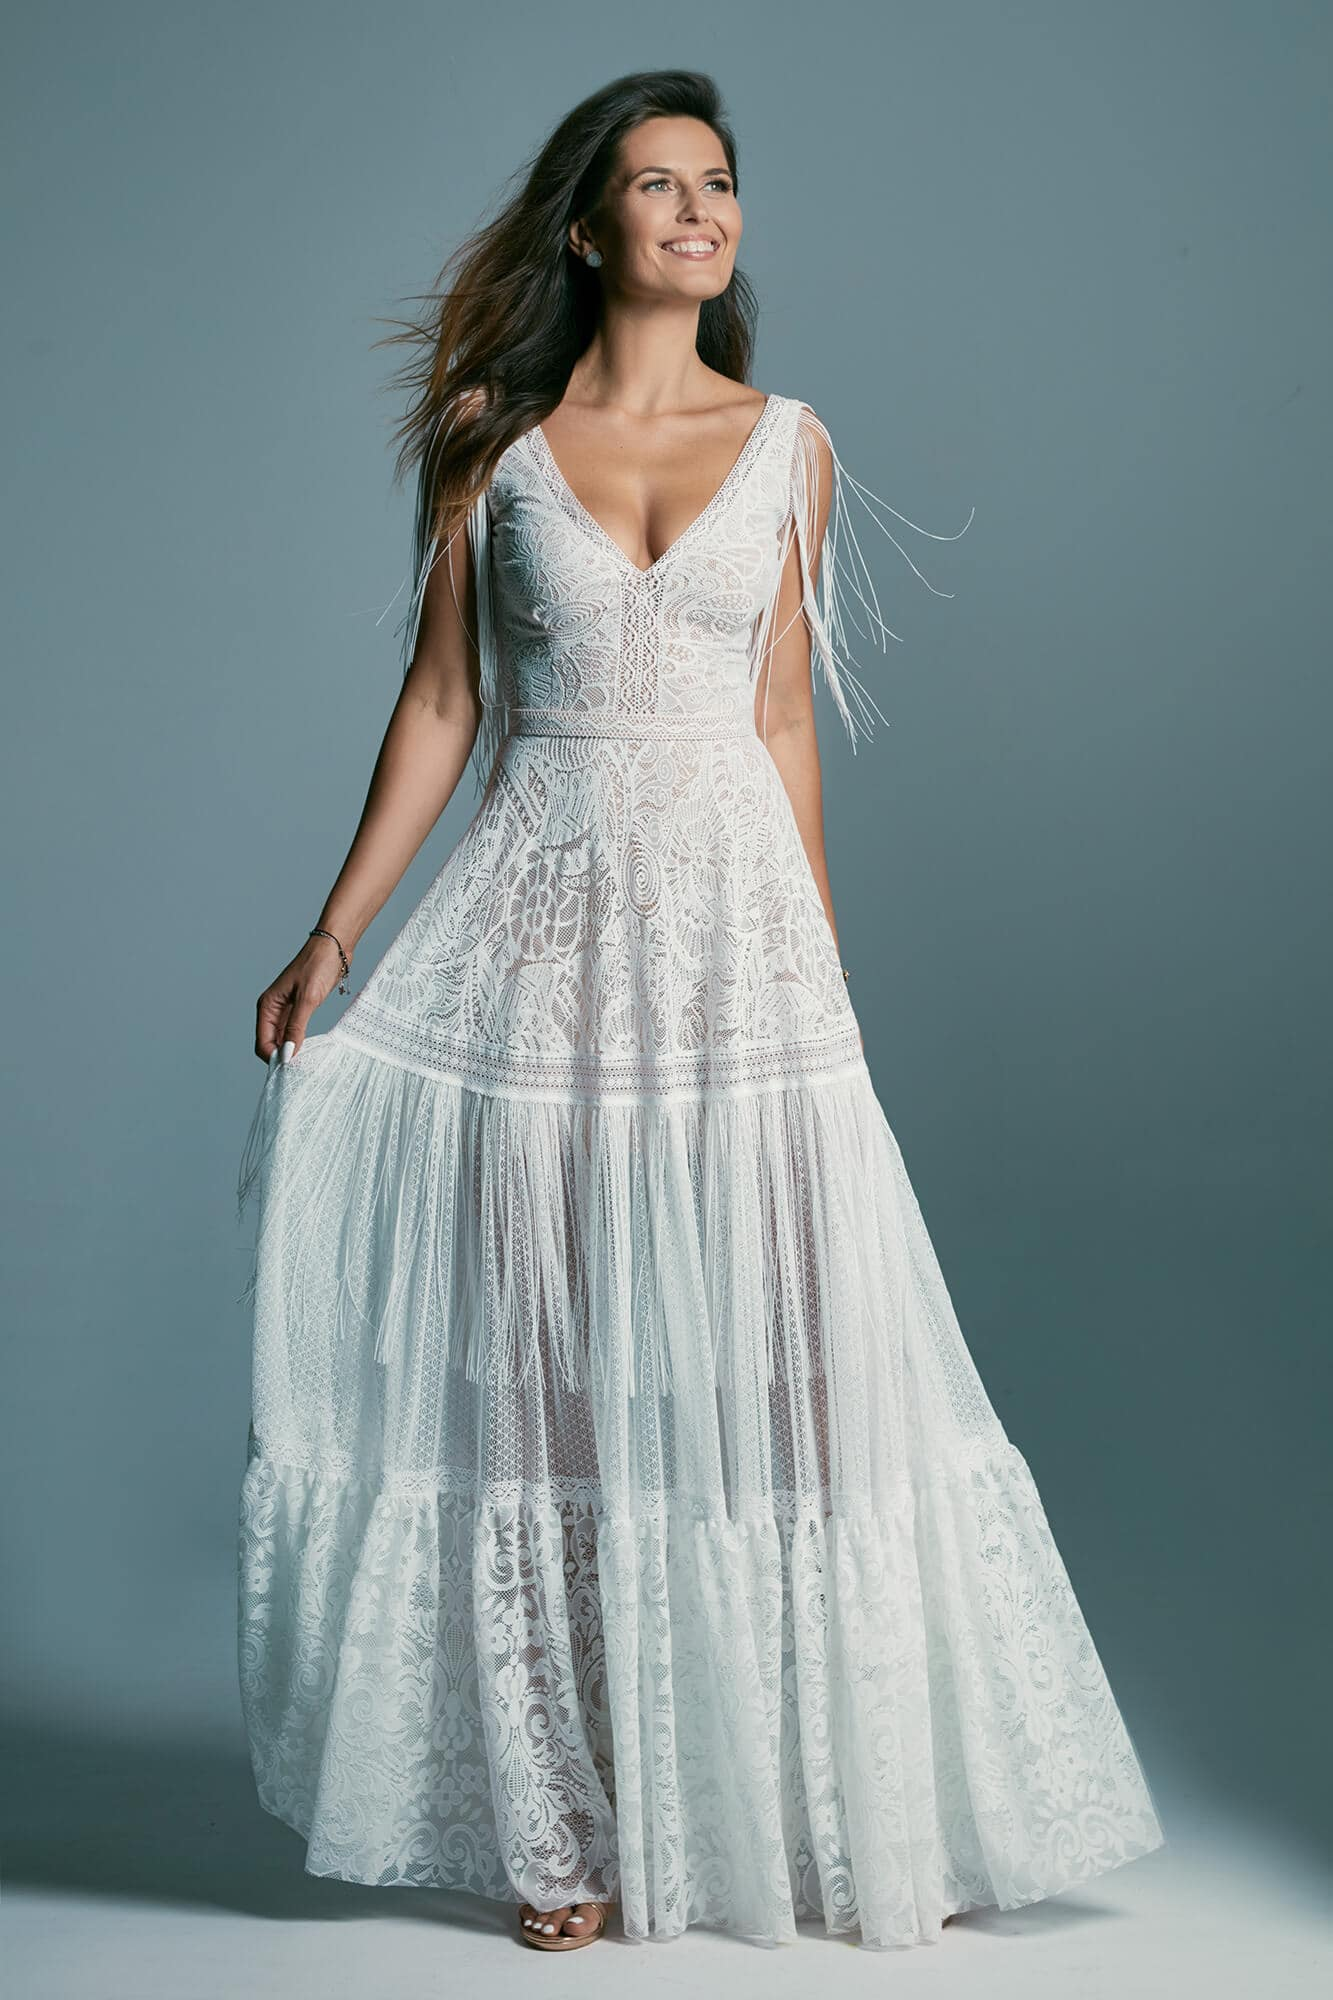 A richly decorated lace wedding dress, finished with fringes Santorini 5